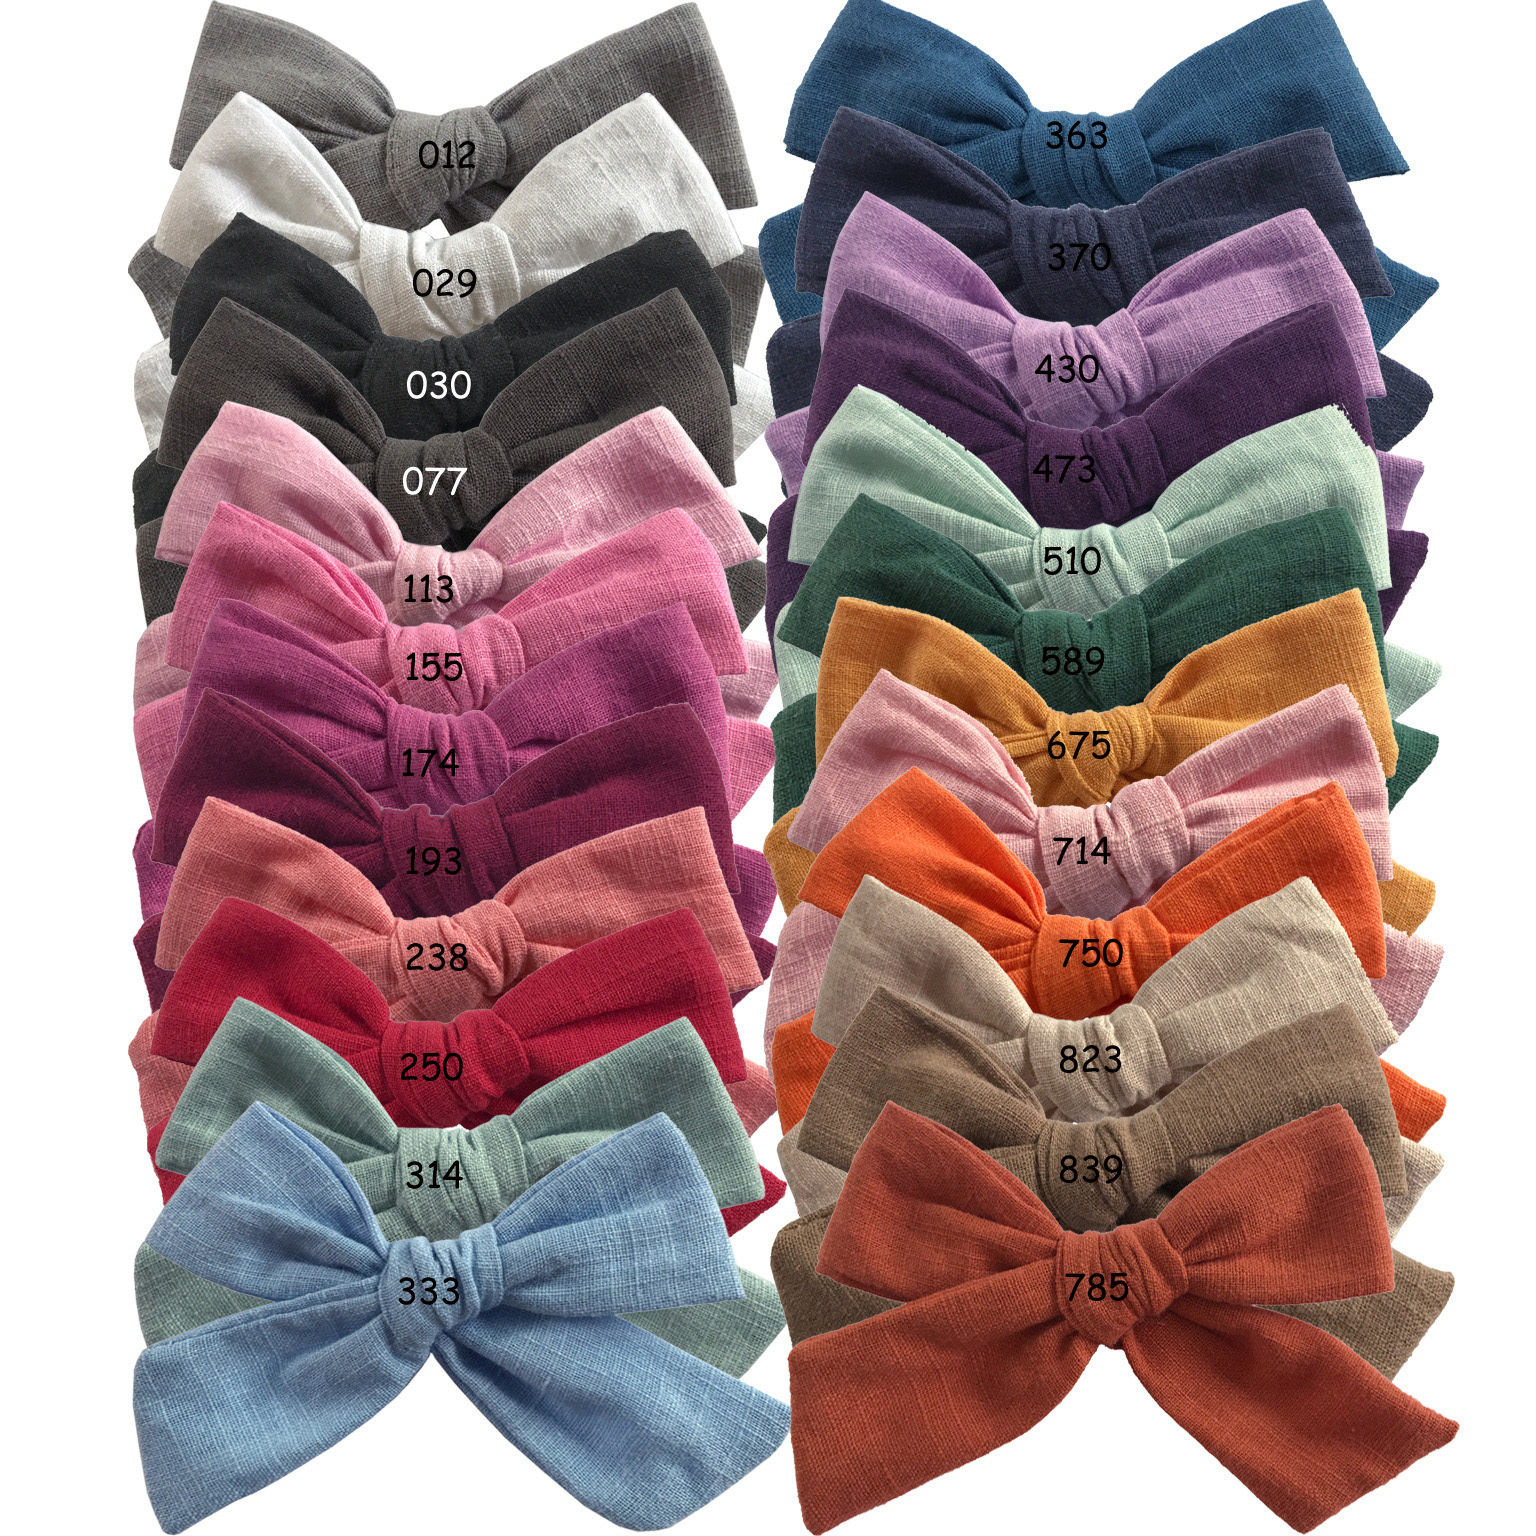 24 Pcs/lot, 4 Inches Hand Tied Cotton Linen Hair Bow Clips, Baby Girls Fabric Bow Nylon Headbands, Baby Shower Gift